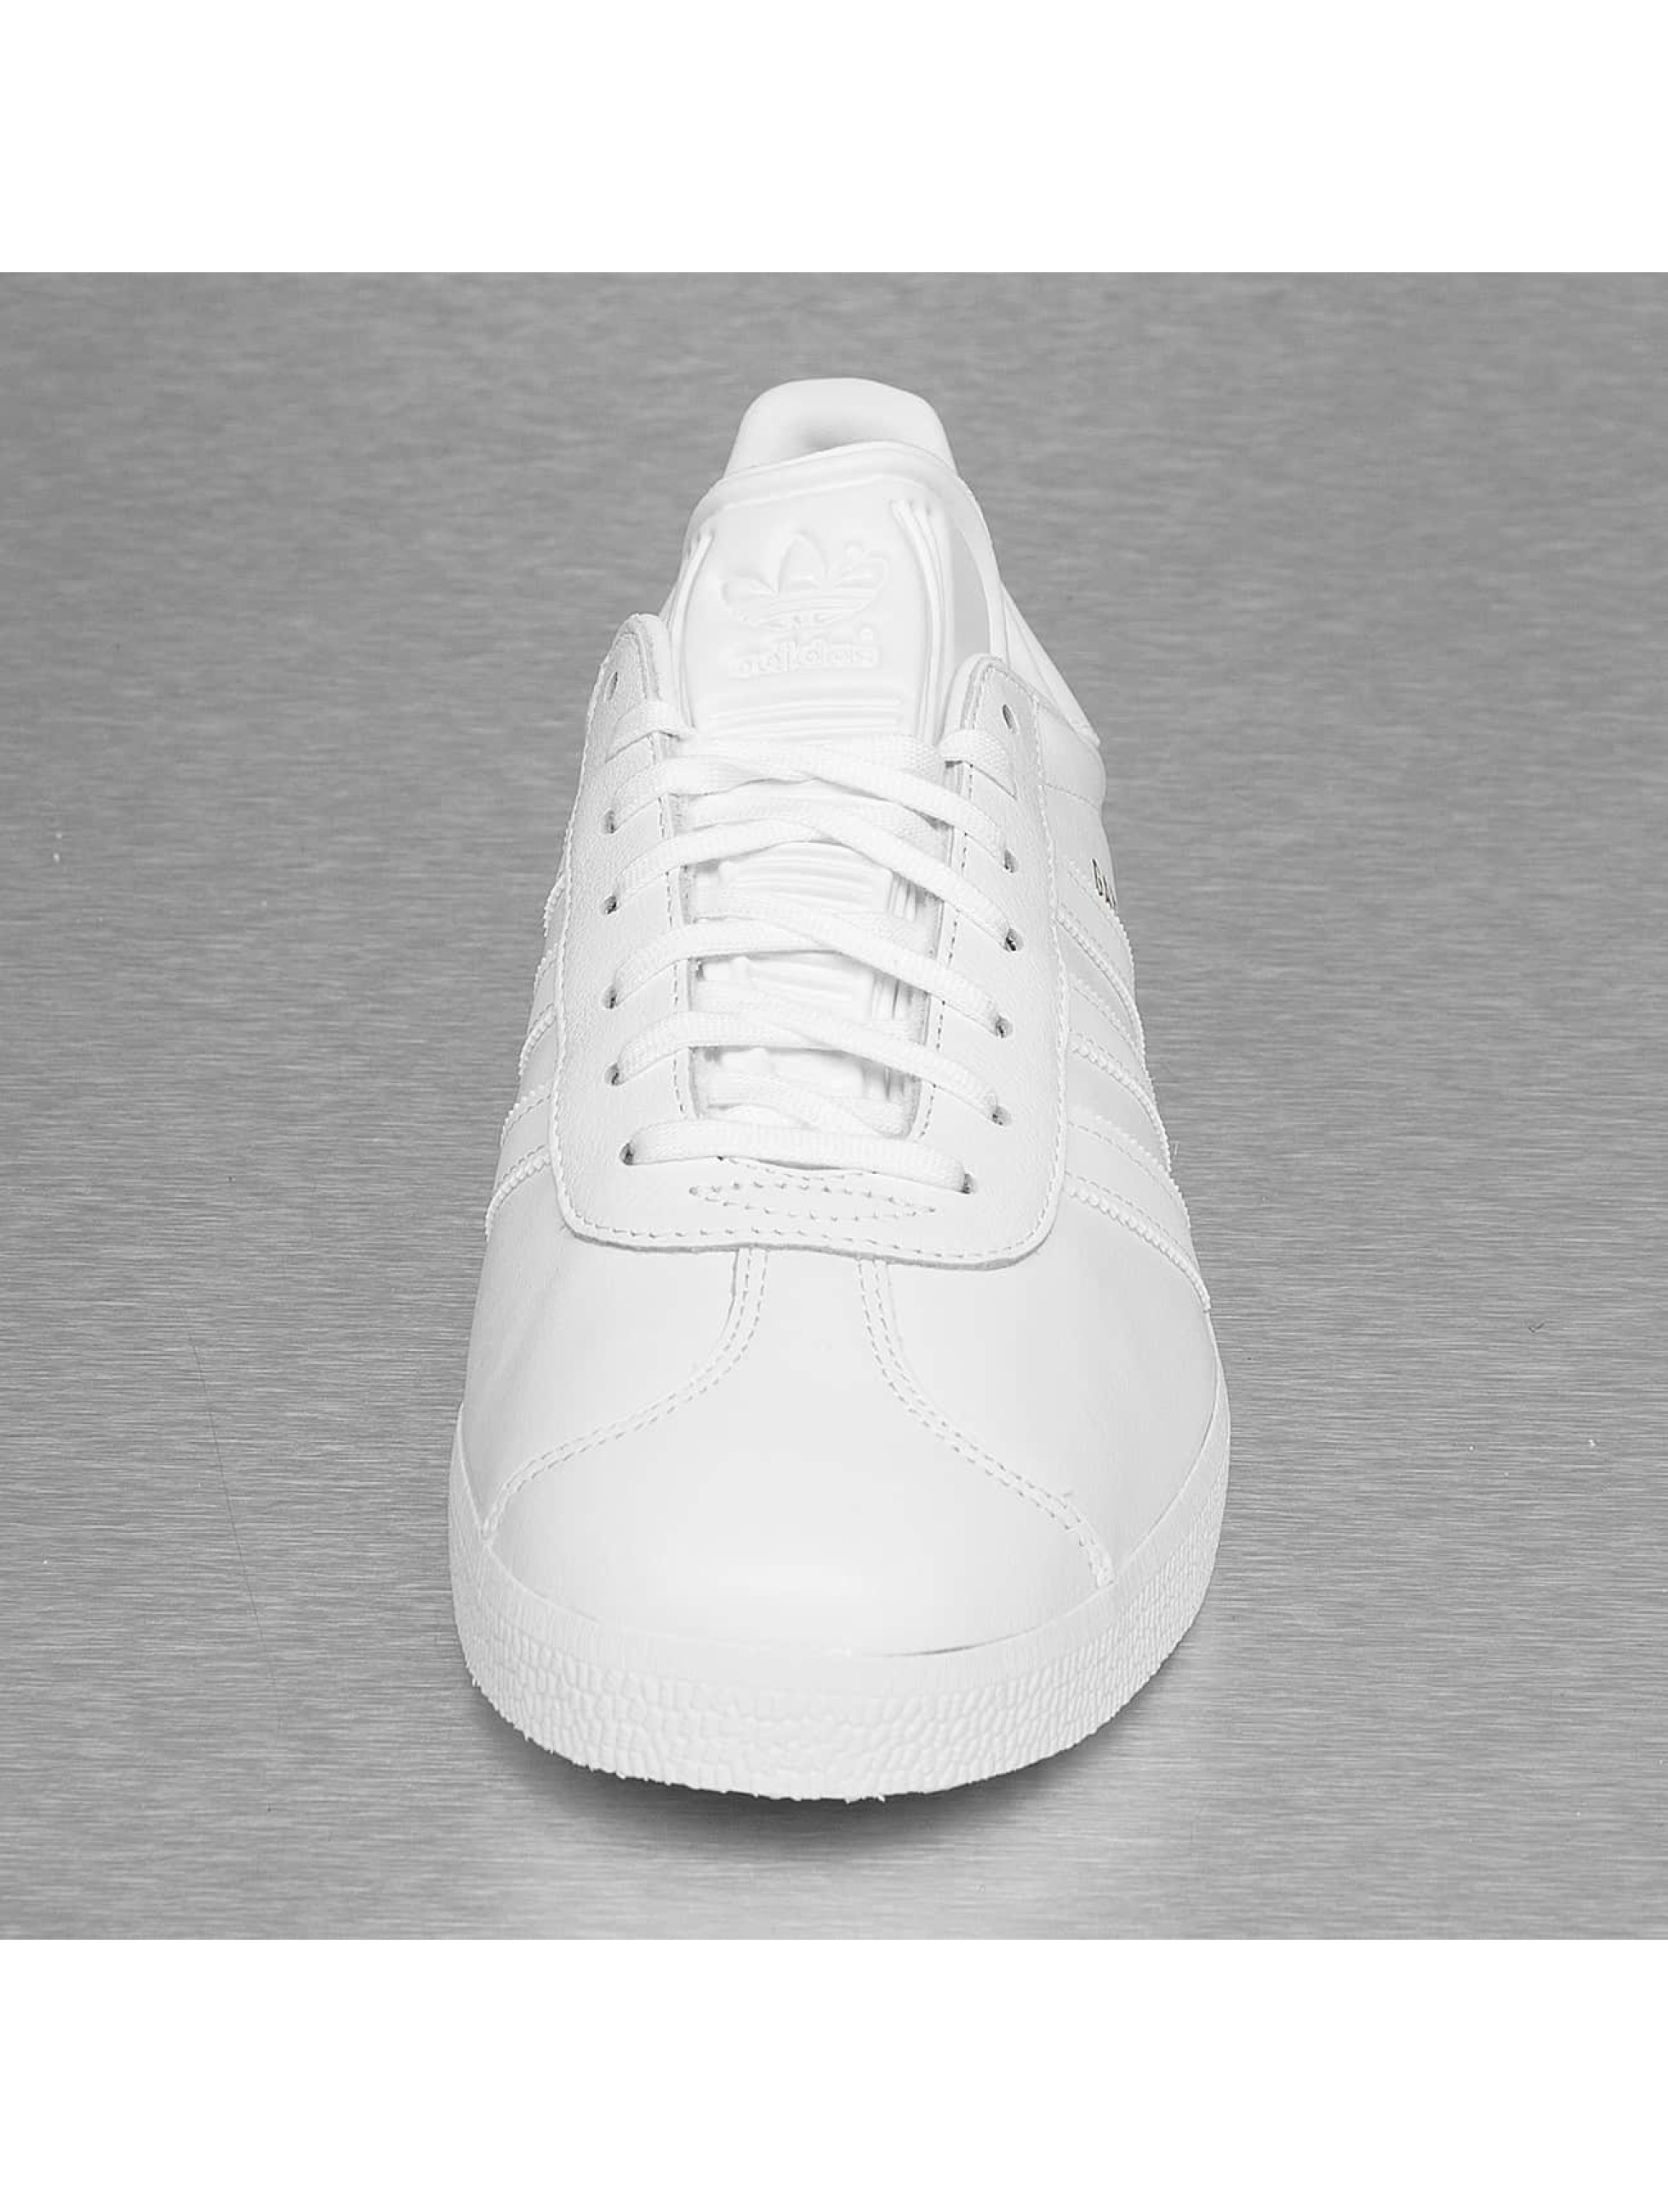 adidas Sneakers Gazelle white